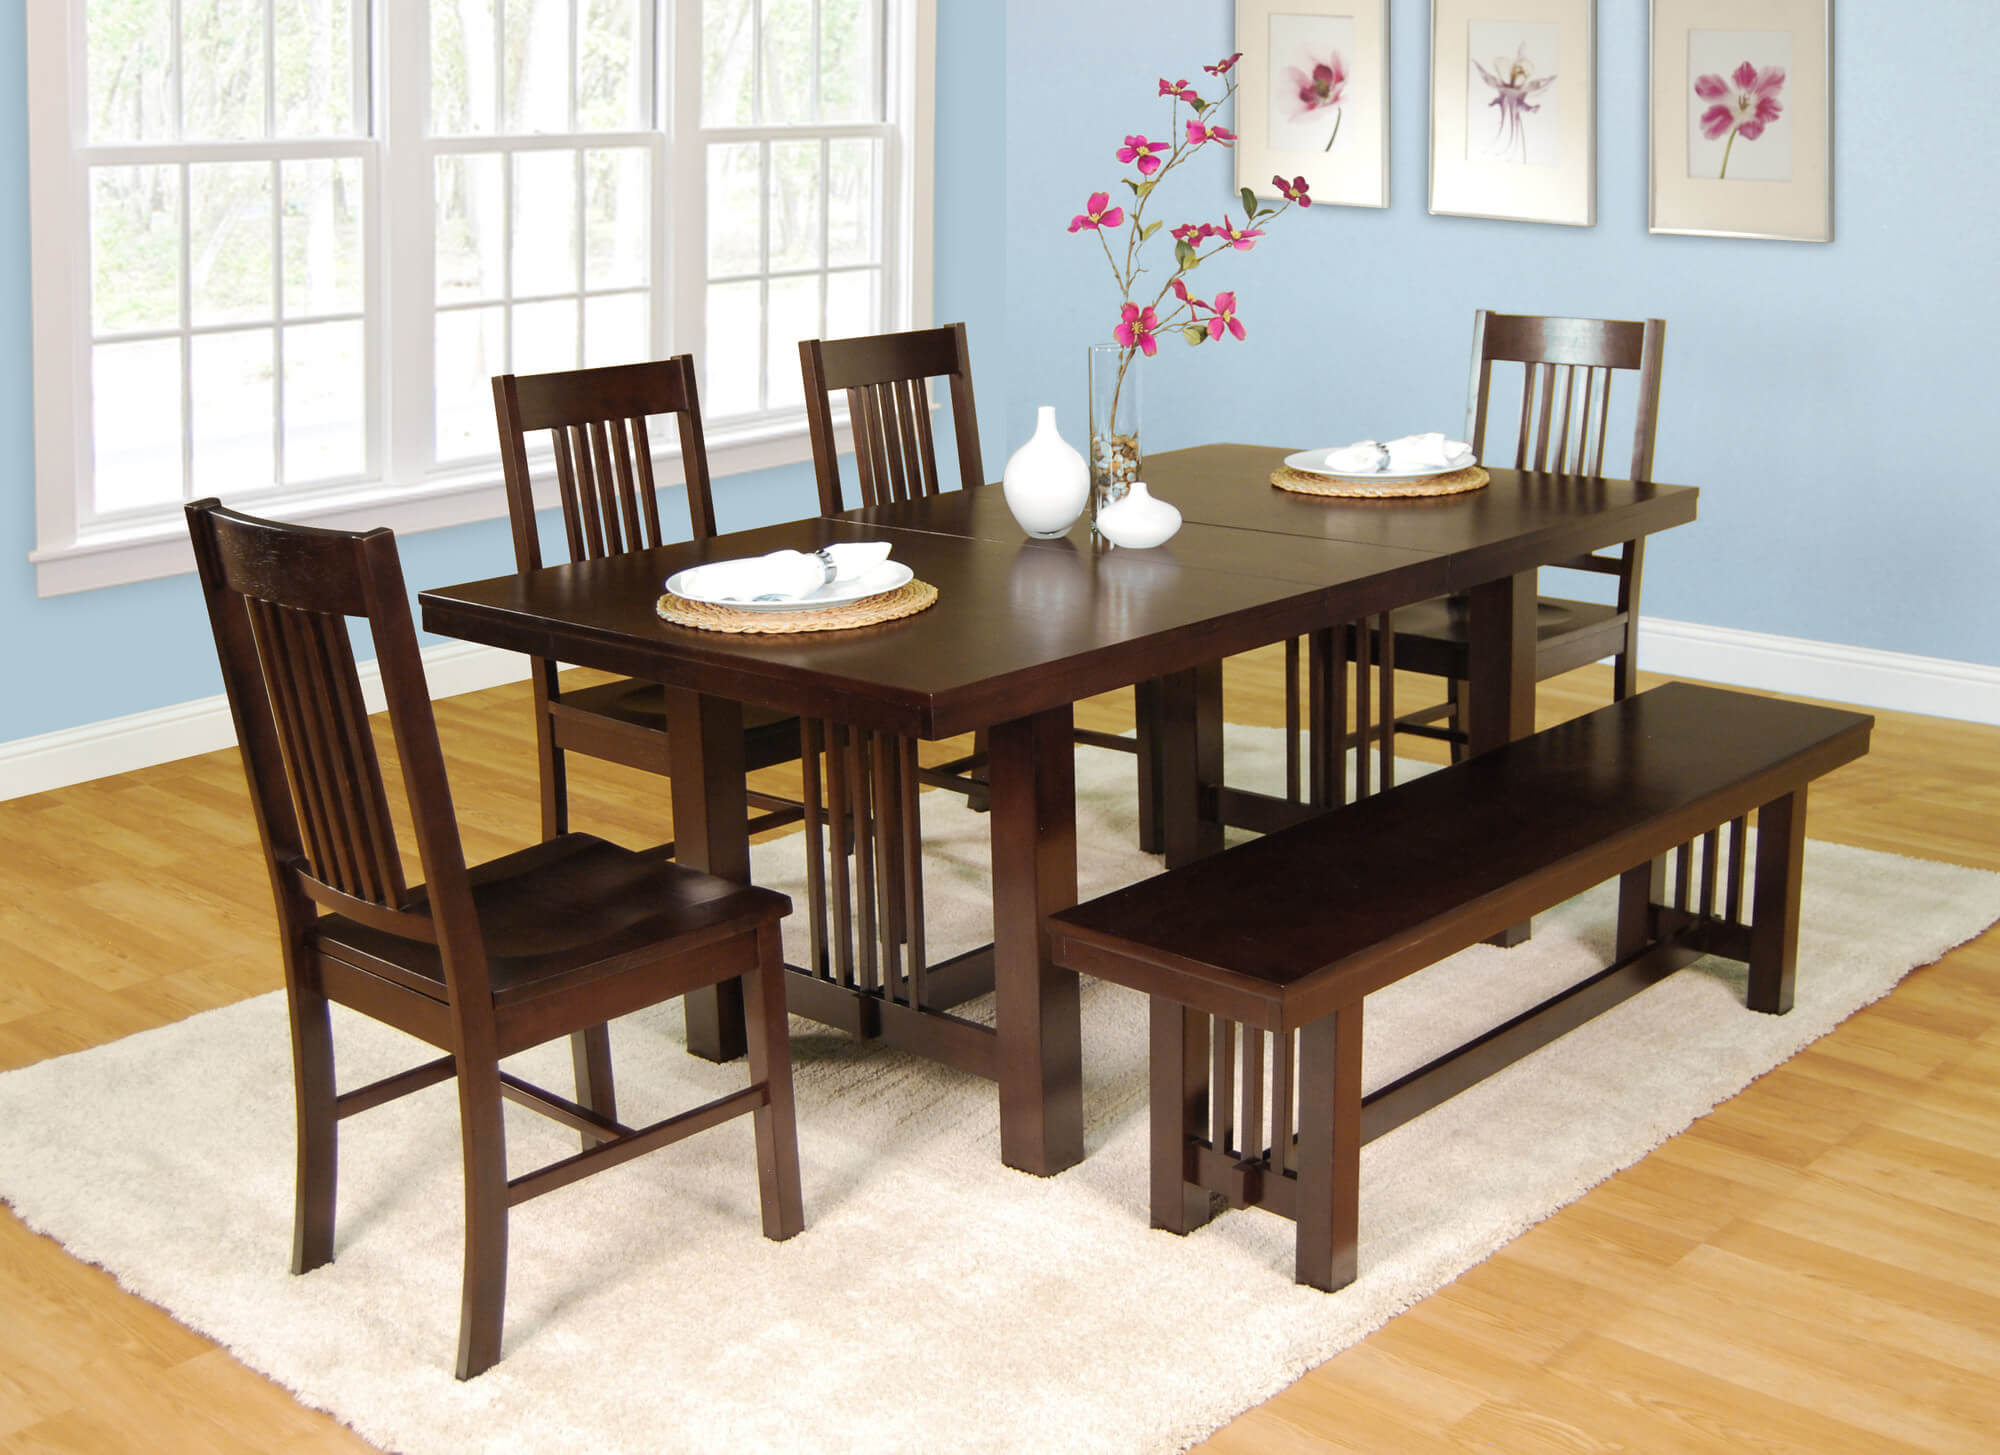 https://s3.amazonaws.com/homestratosphere/wp-content/uploads/2014/09/10way-dining-room-set-with-bench.jpg